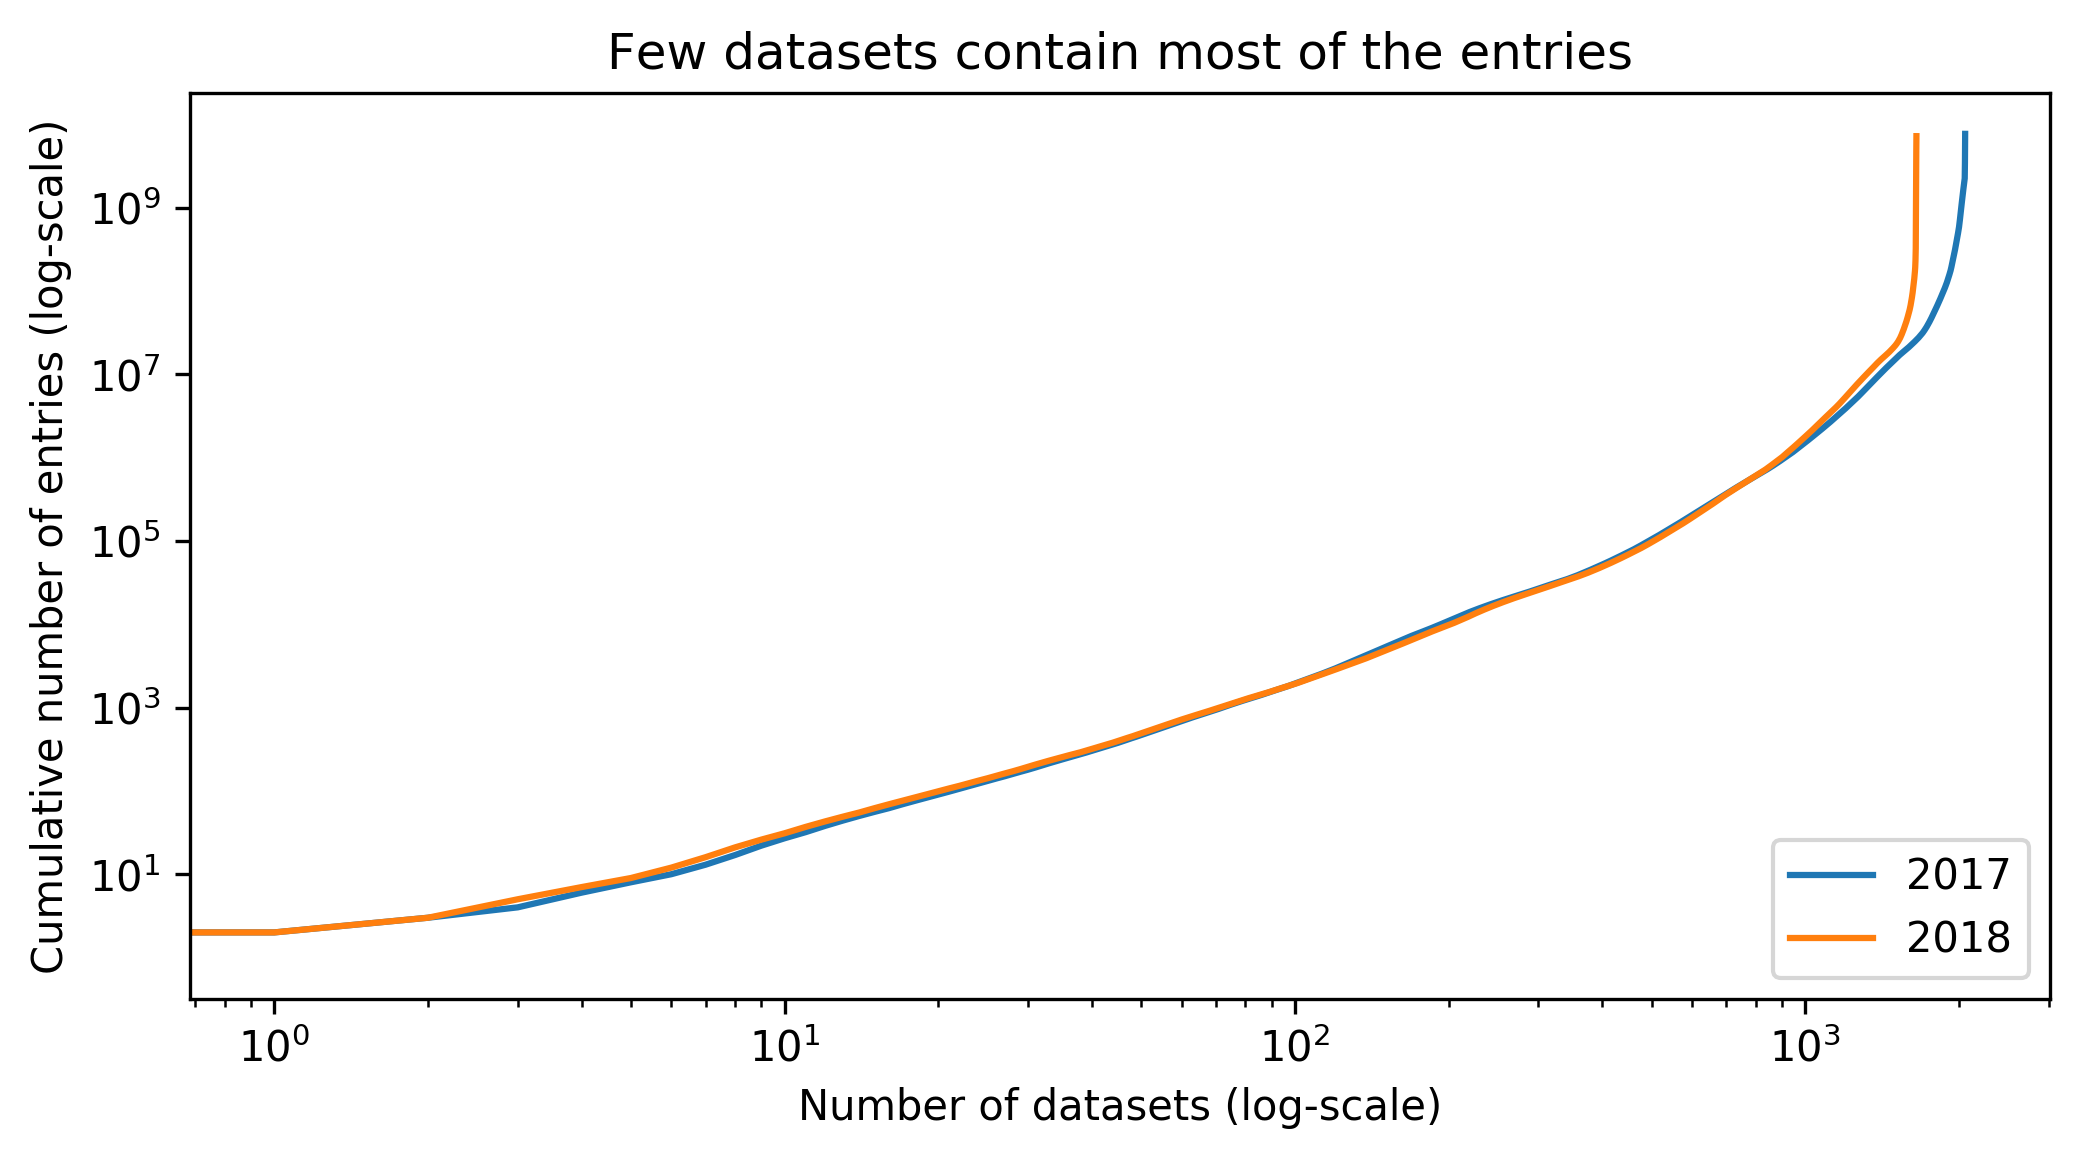 Doing a plot of the cumulative sum of entries shows that the distribution is long tailed